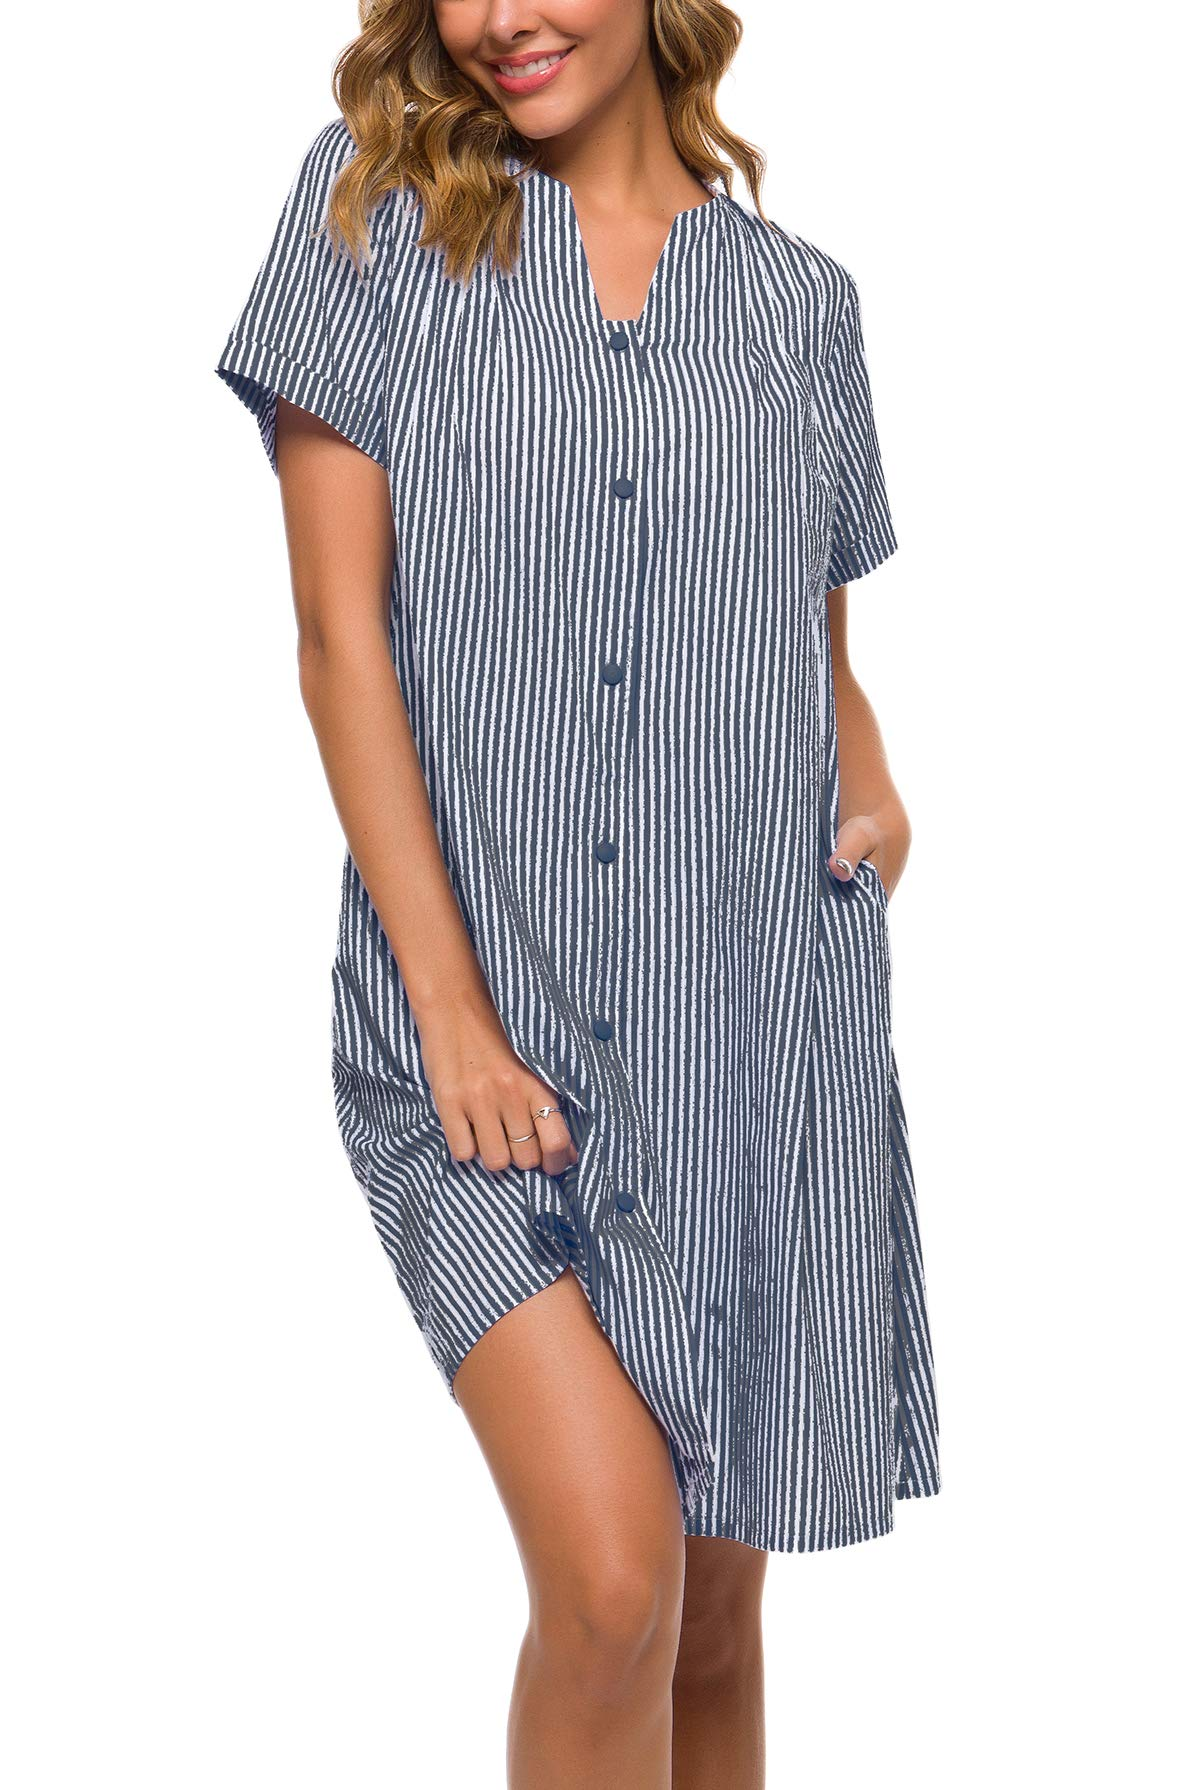 YOZLY House Coat Womens Cotton Stripe Nightgown Short Sleeves Button Down Duster Dress (Navy Blue, XL) by YOZLY